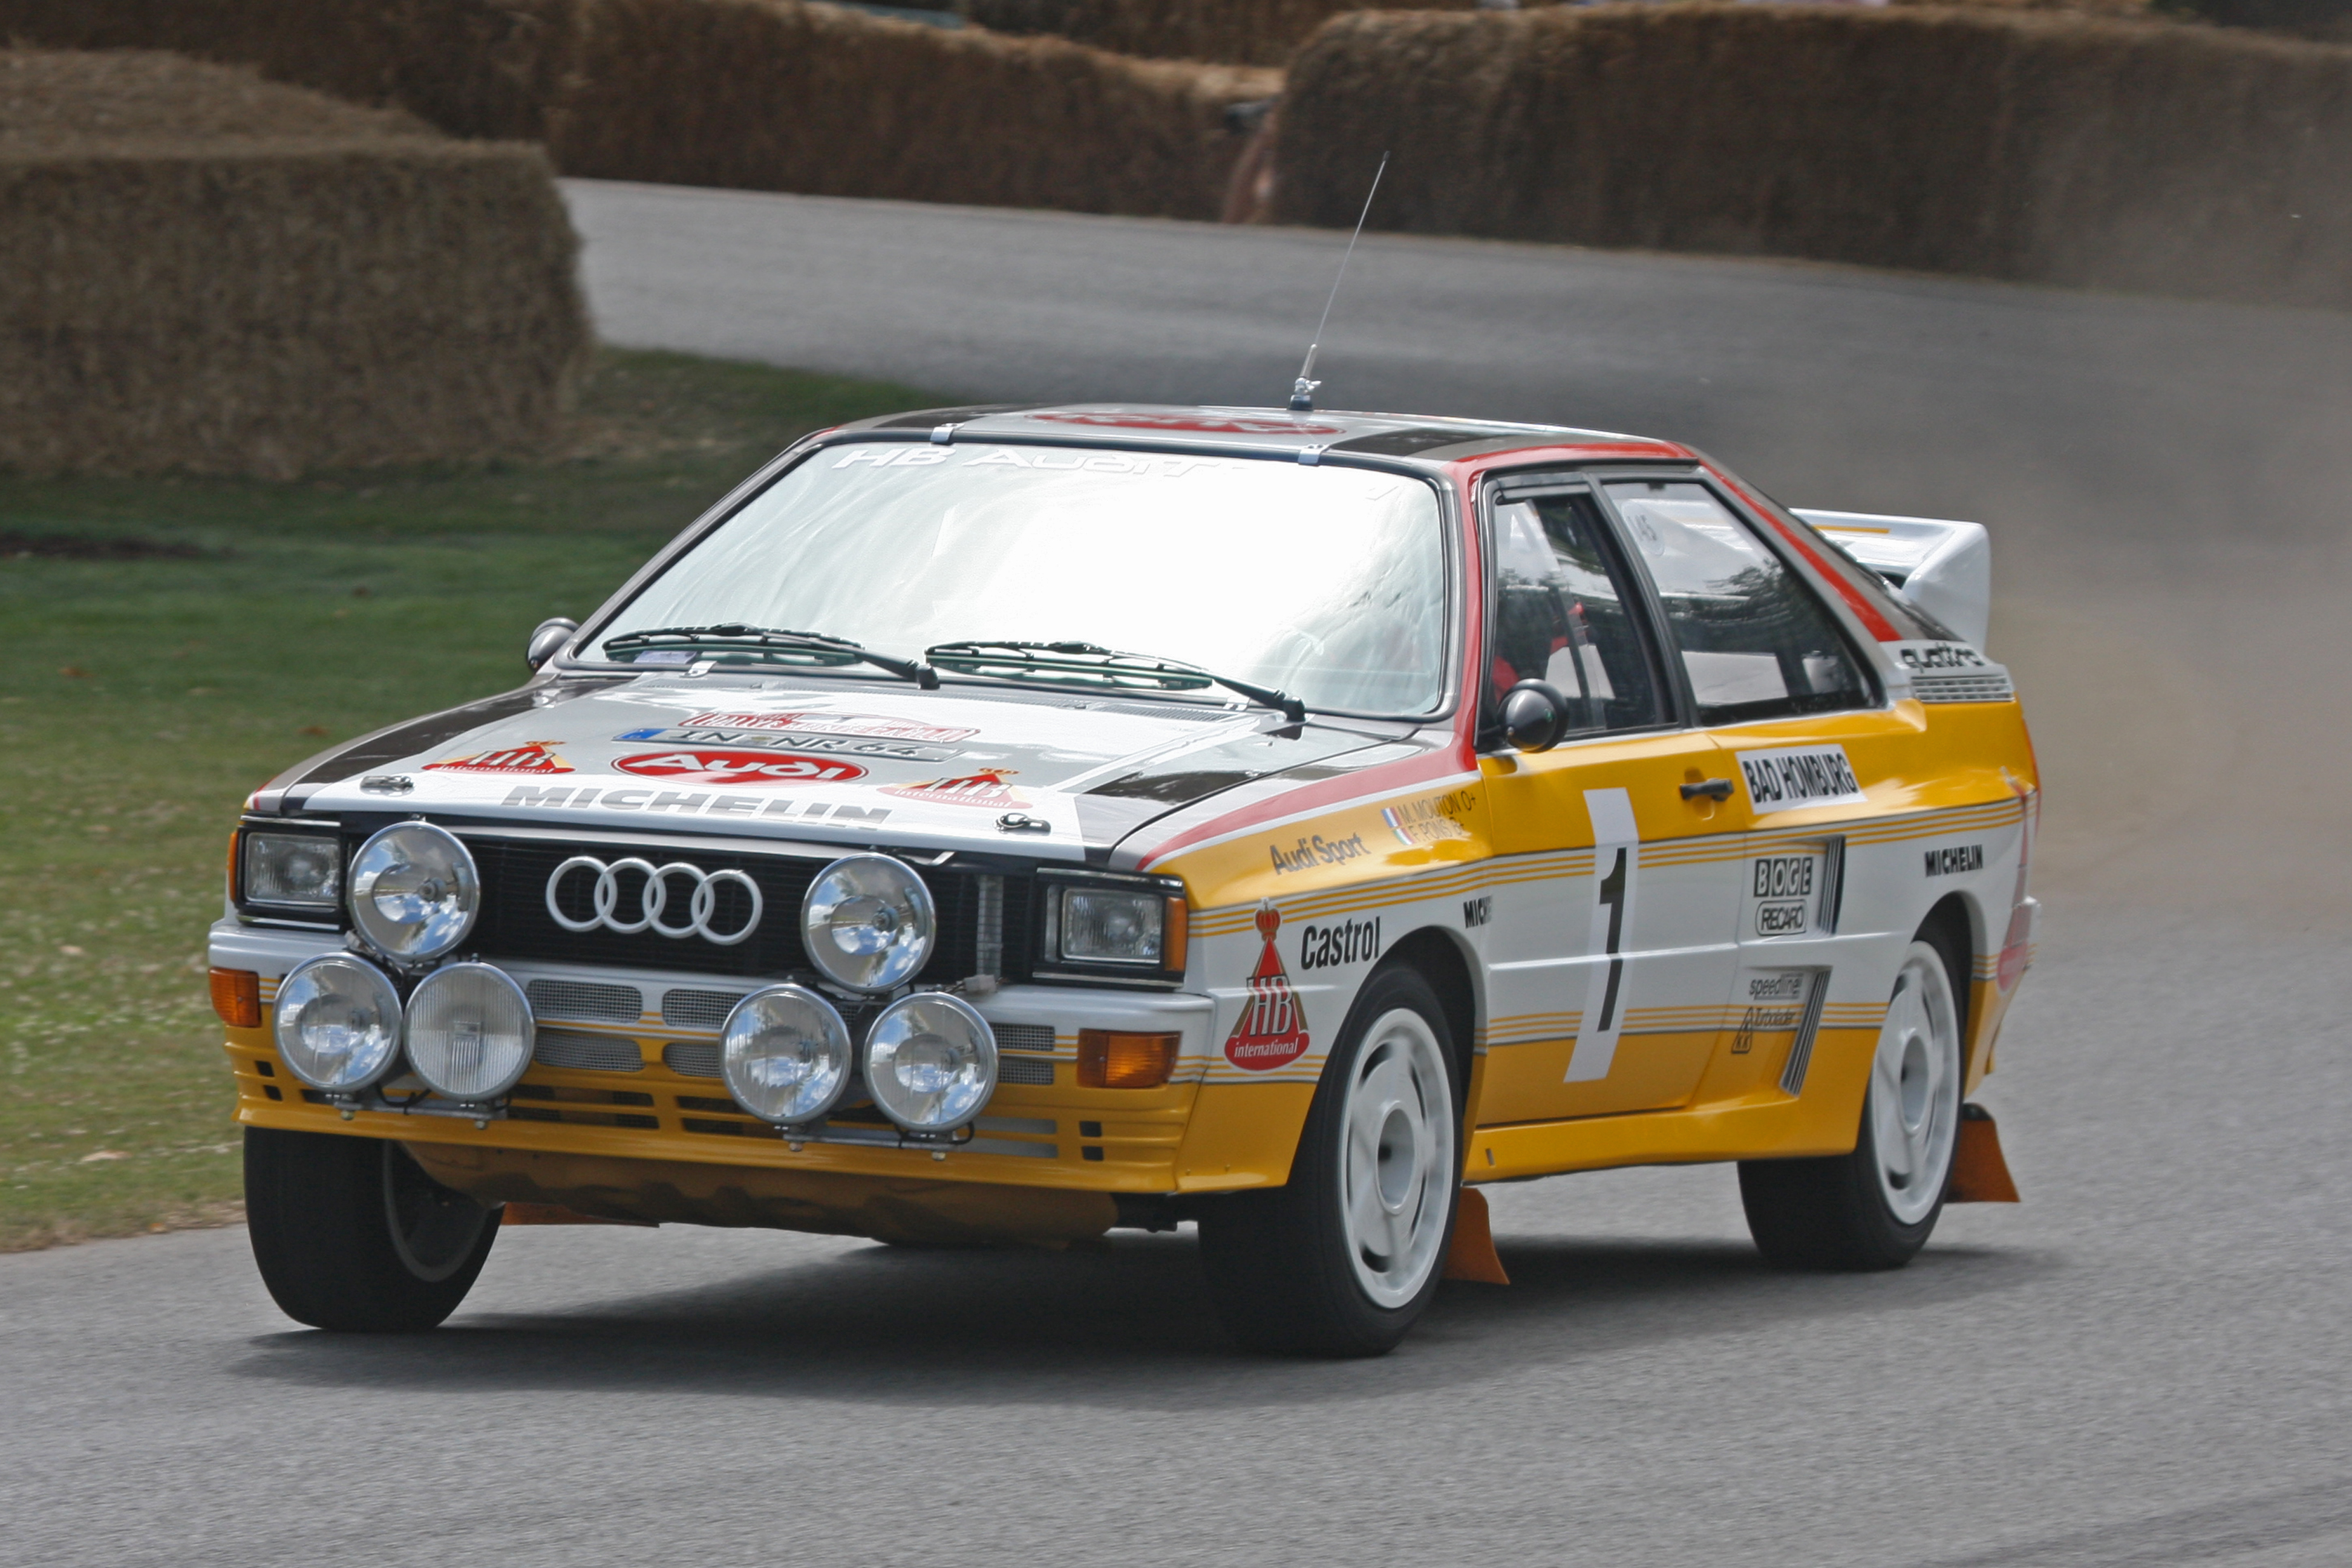 motorsports monday 1985 audi quattro rally car german. Black Bedroom Furniture Sets. Home Design Ideas